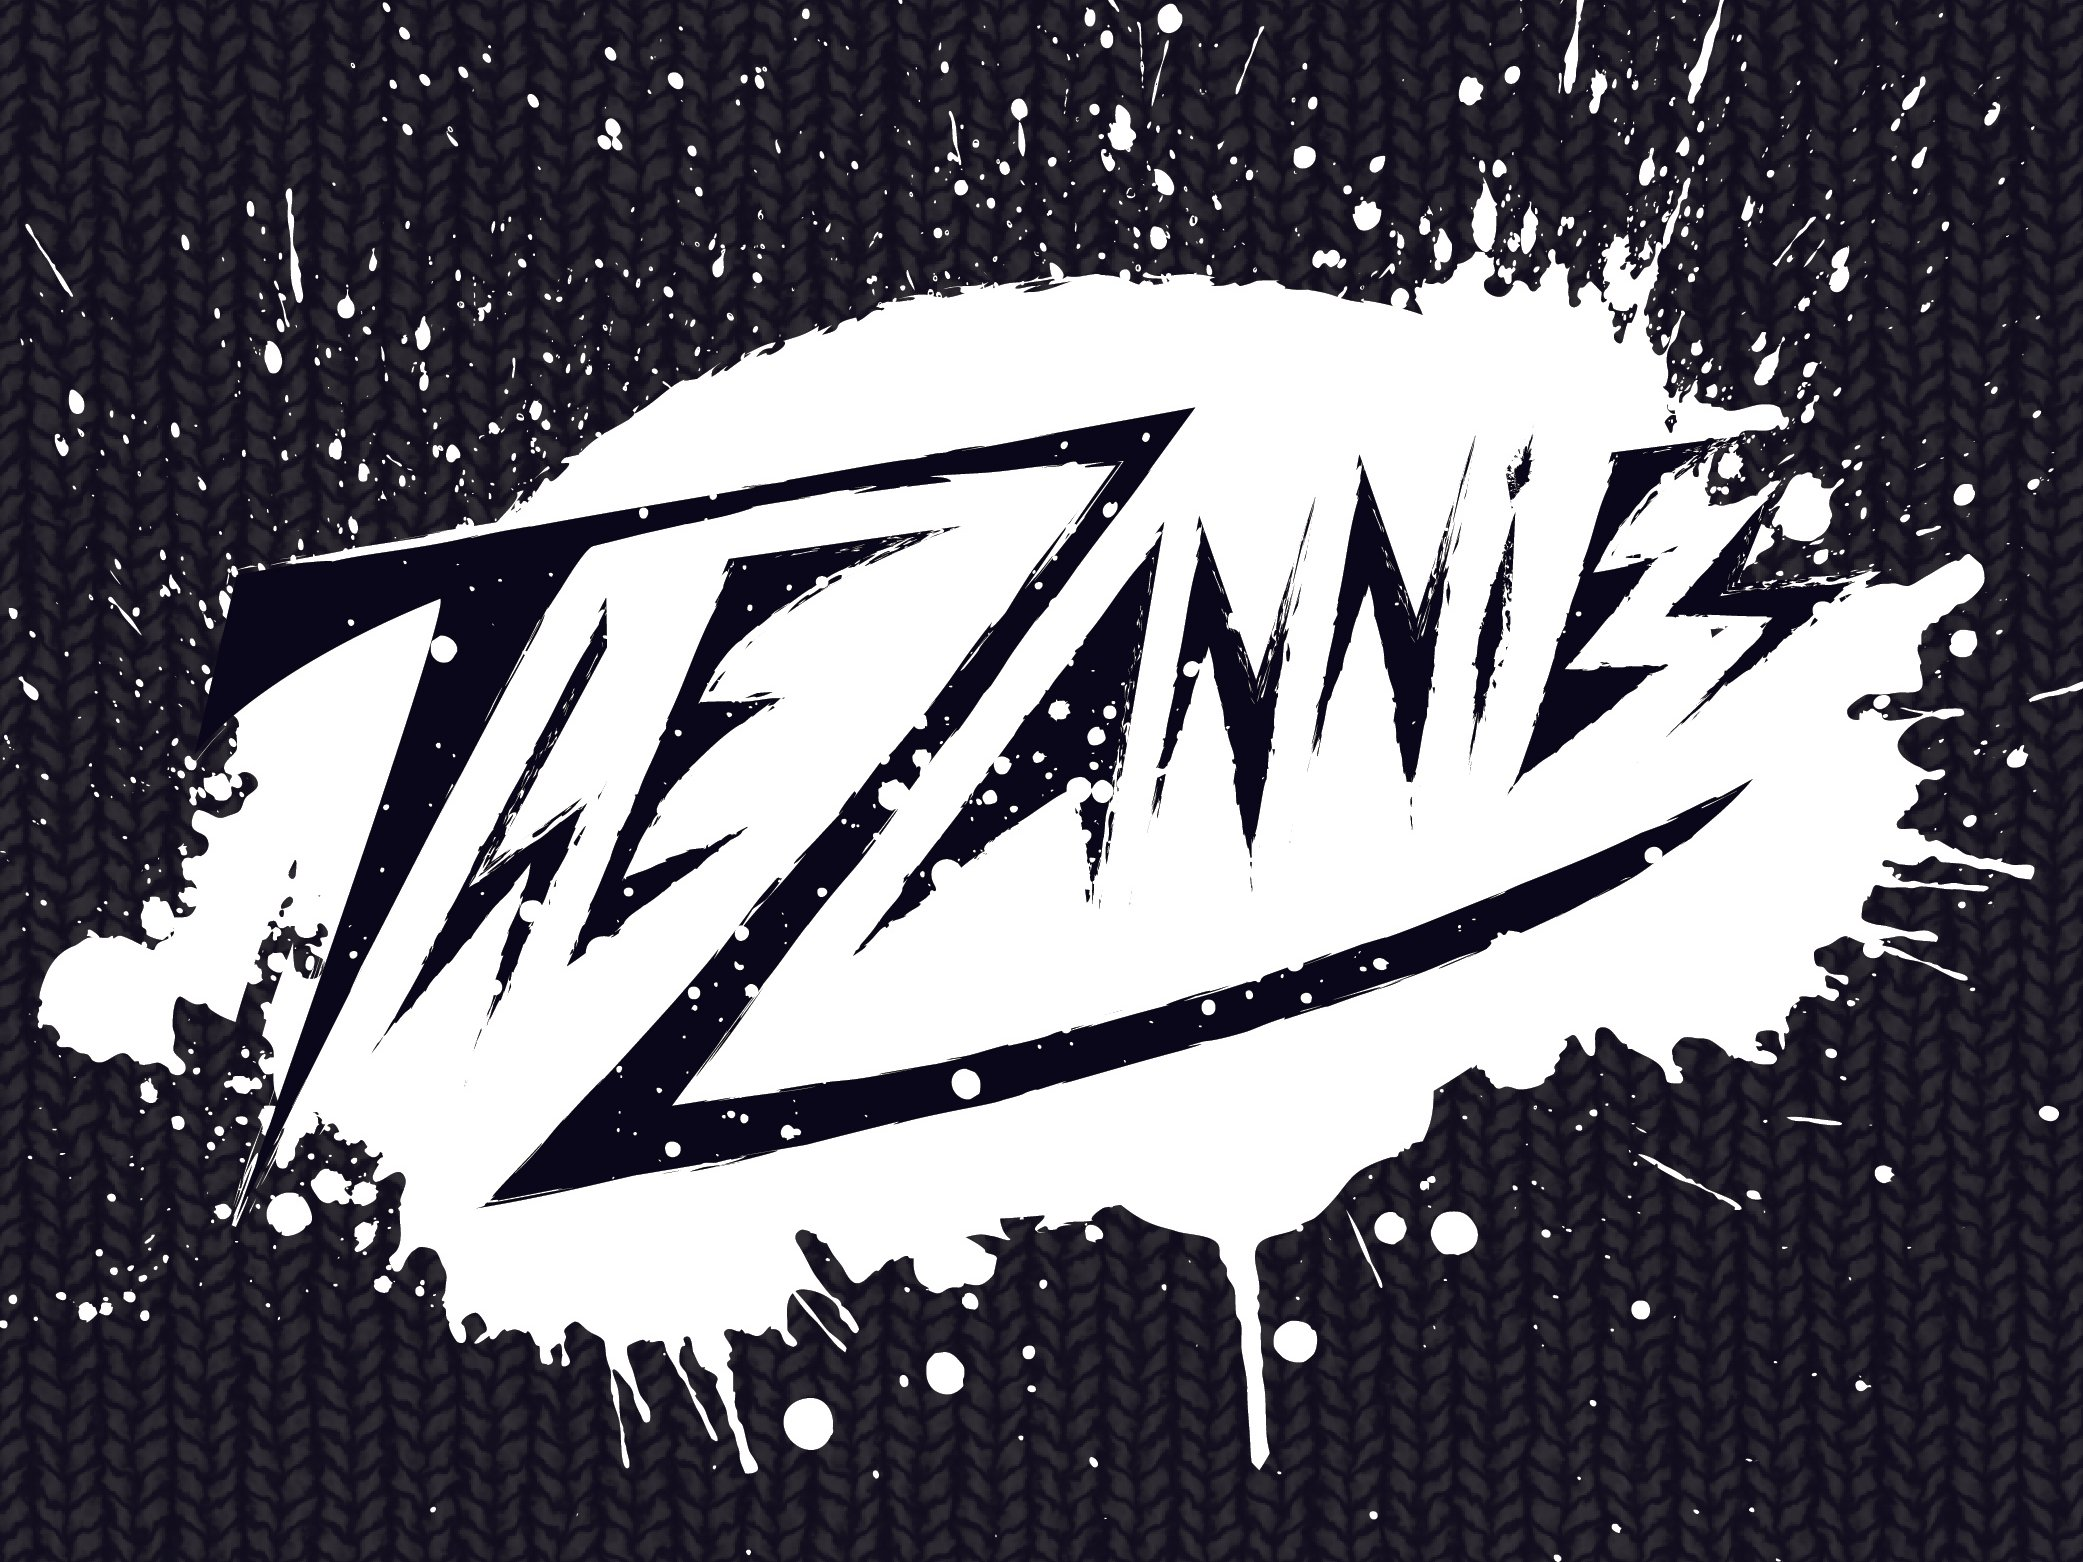 Image for The Zannies